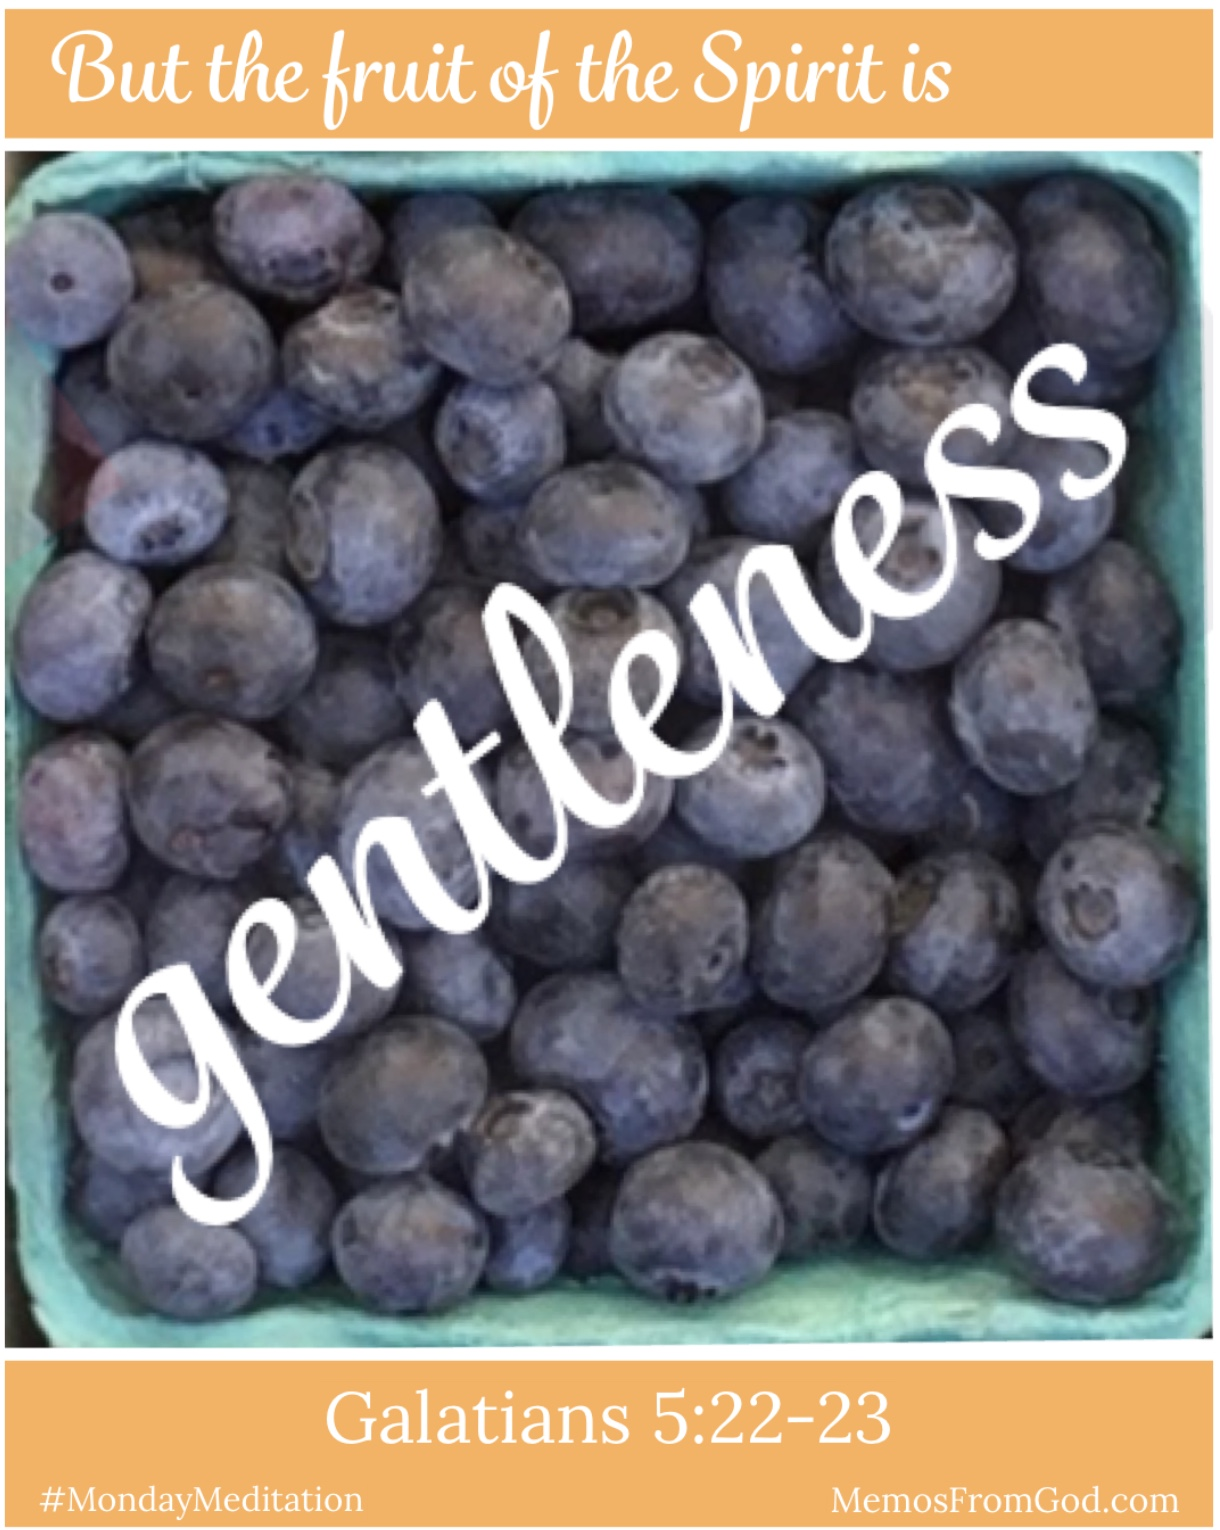 The top view of a pint box of blueberries. Caption: But the fruit of the Spirit is gentleness. Galatians 5:22-23